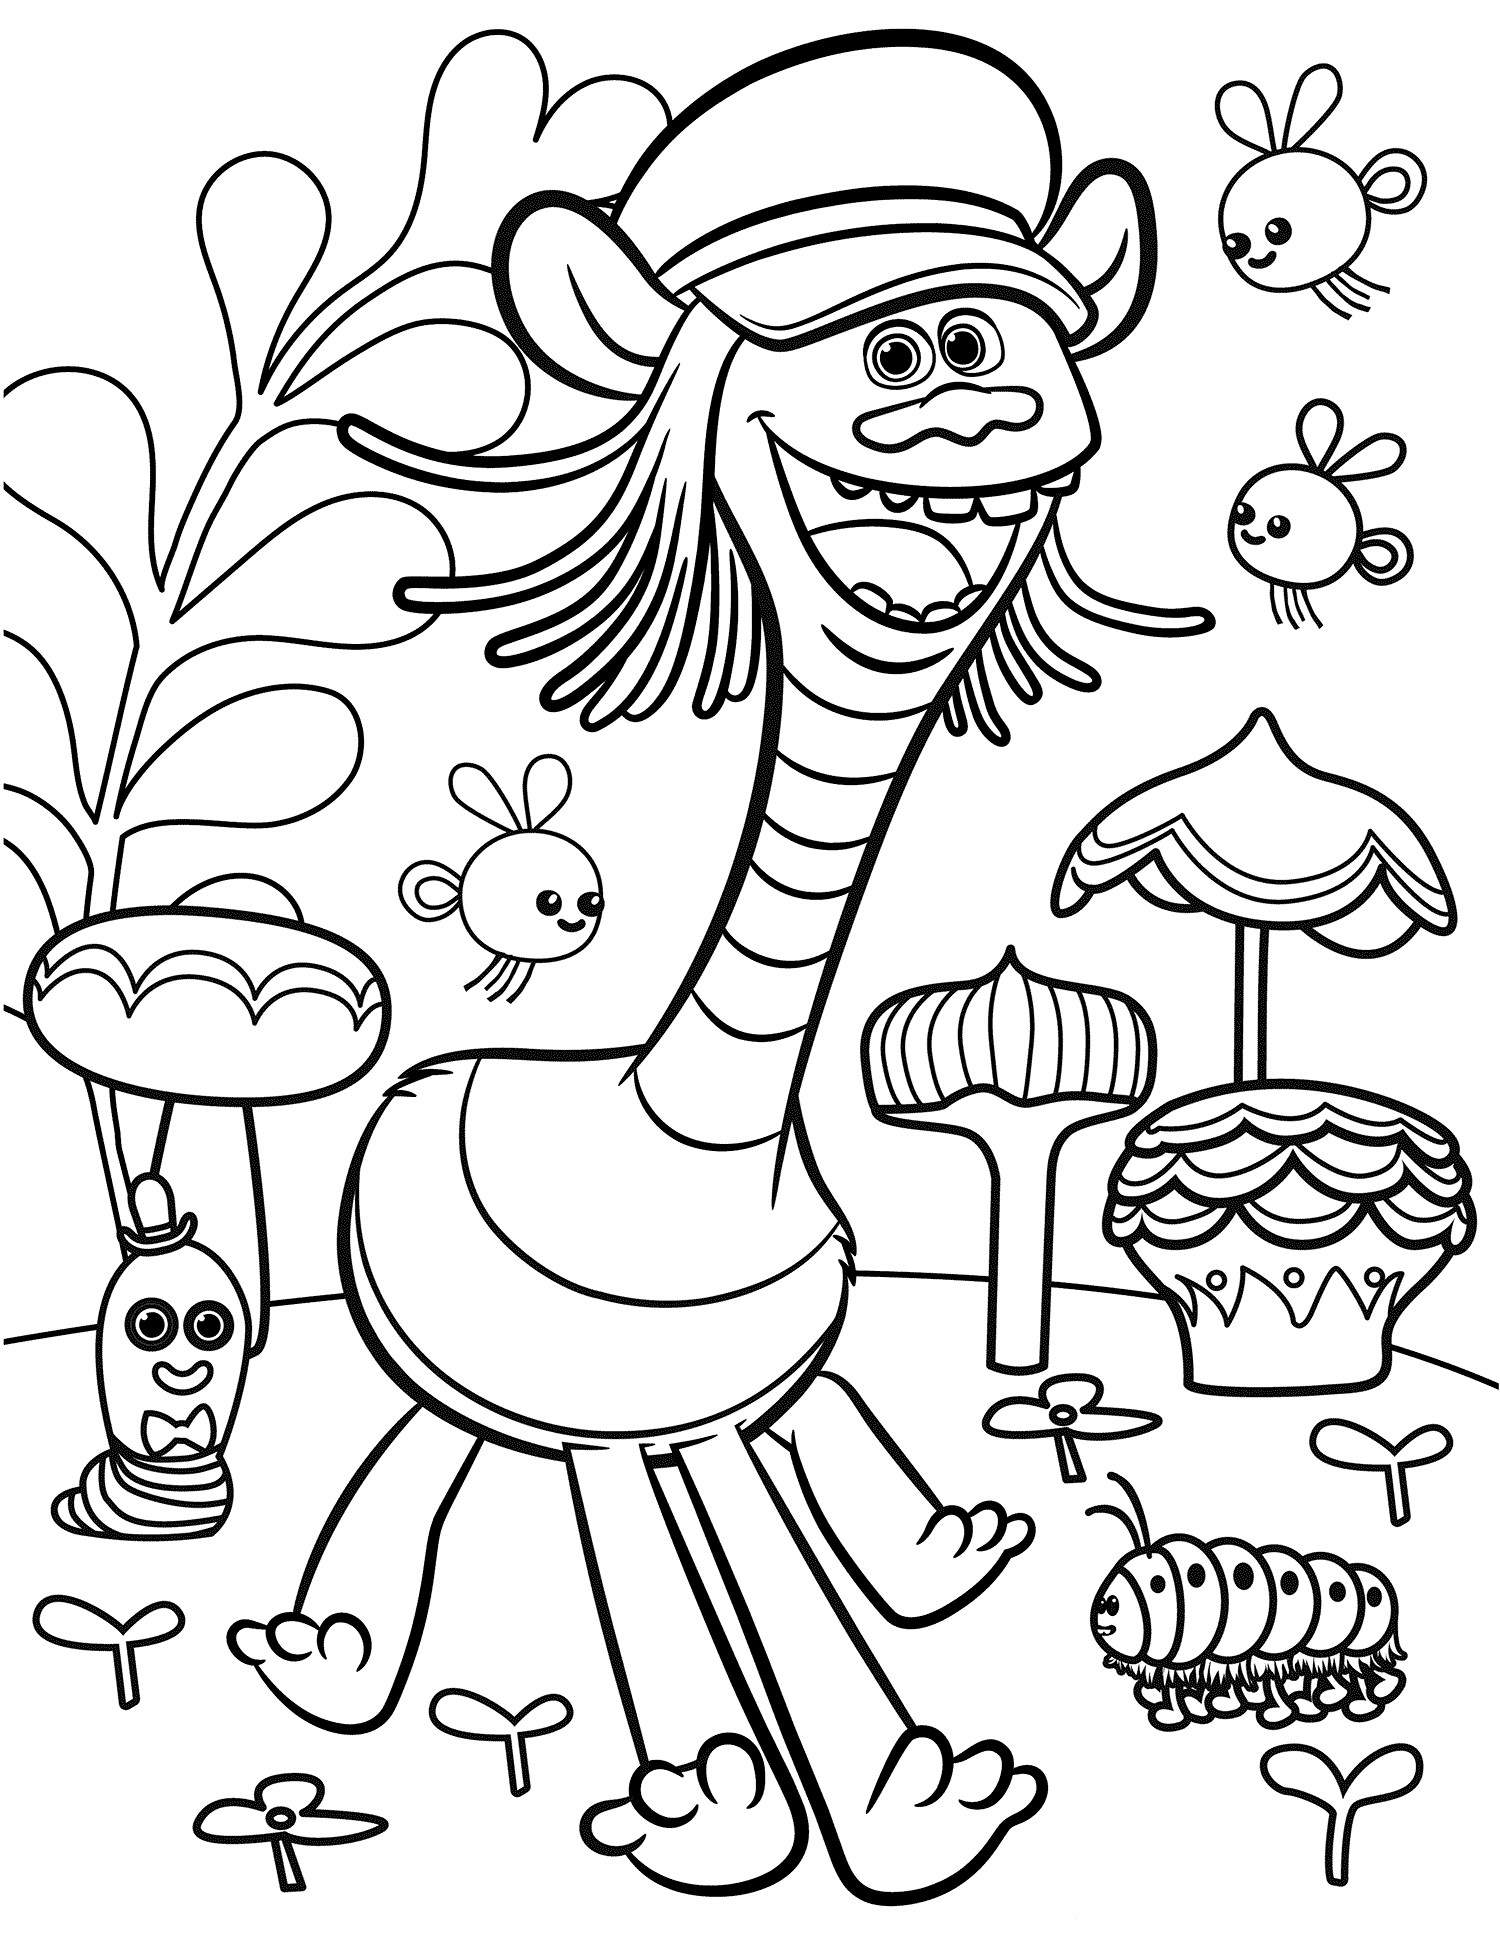 Troll Printable Coloring Pages  Trolls Movie Coloring Pages Best Coloring Pages For Kids